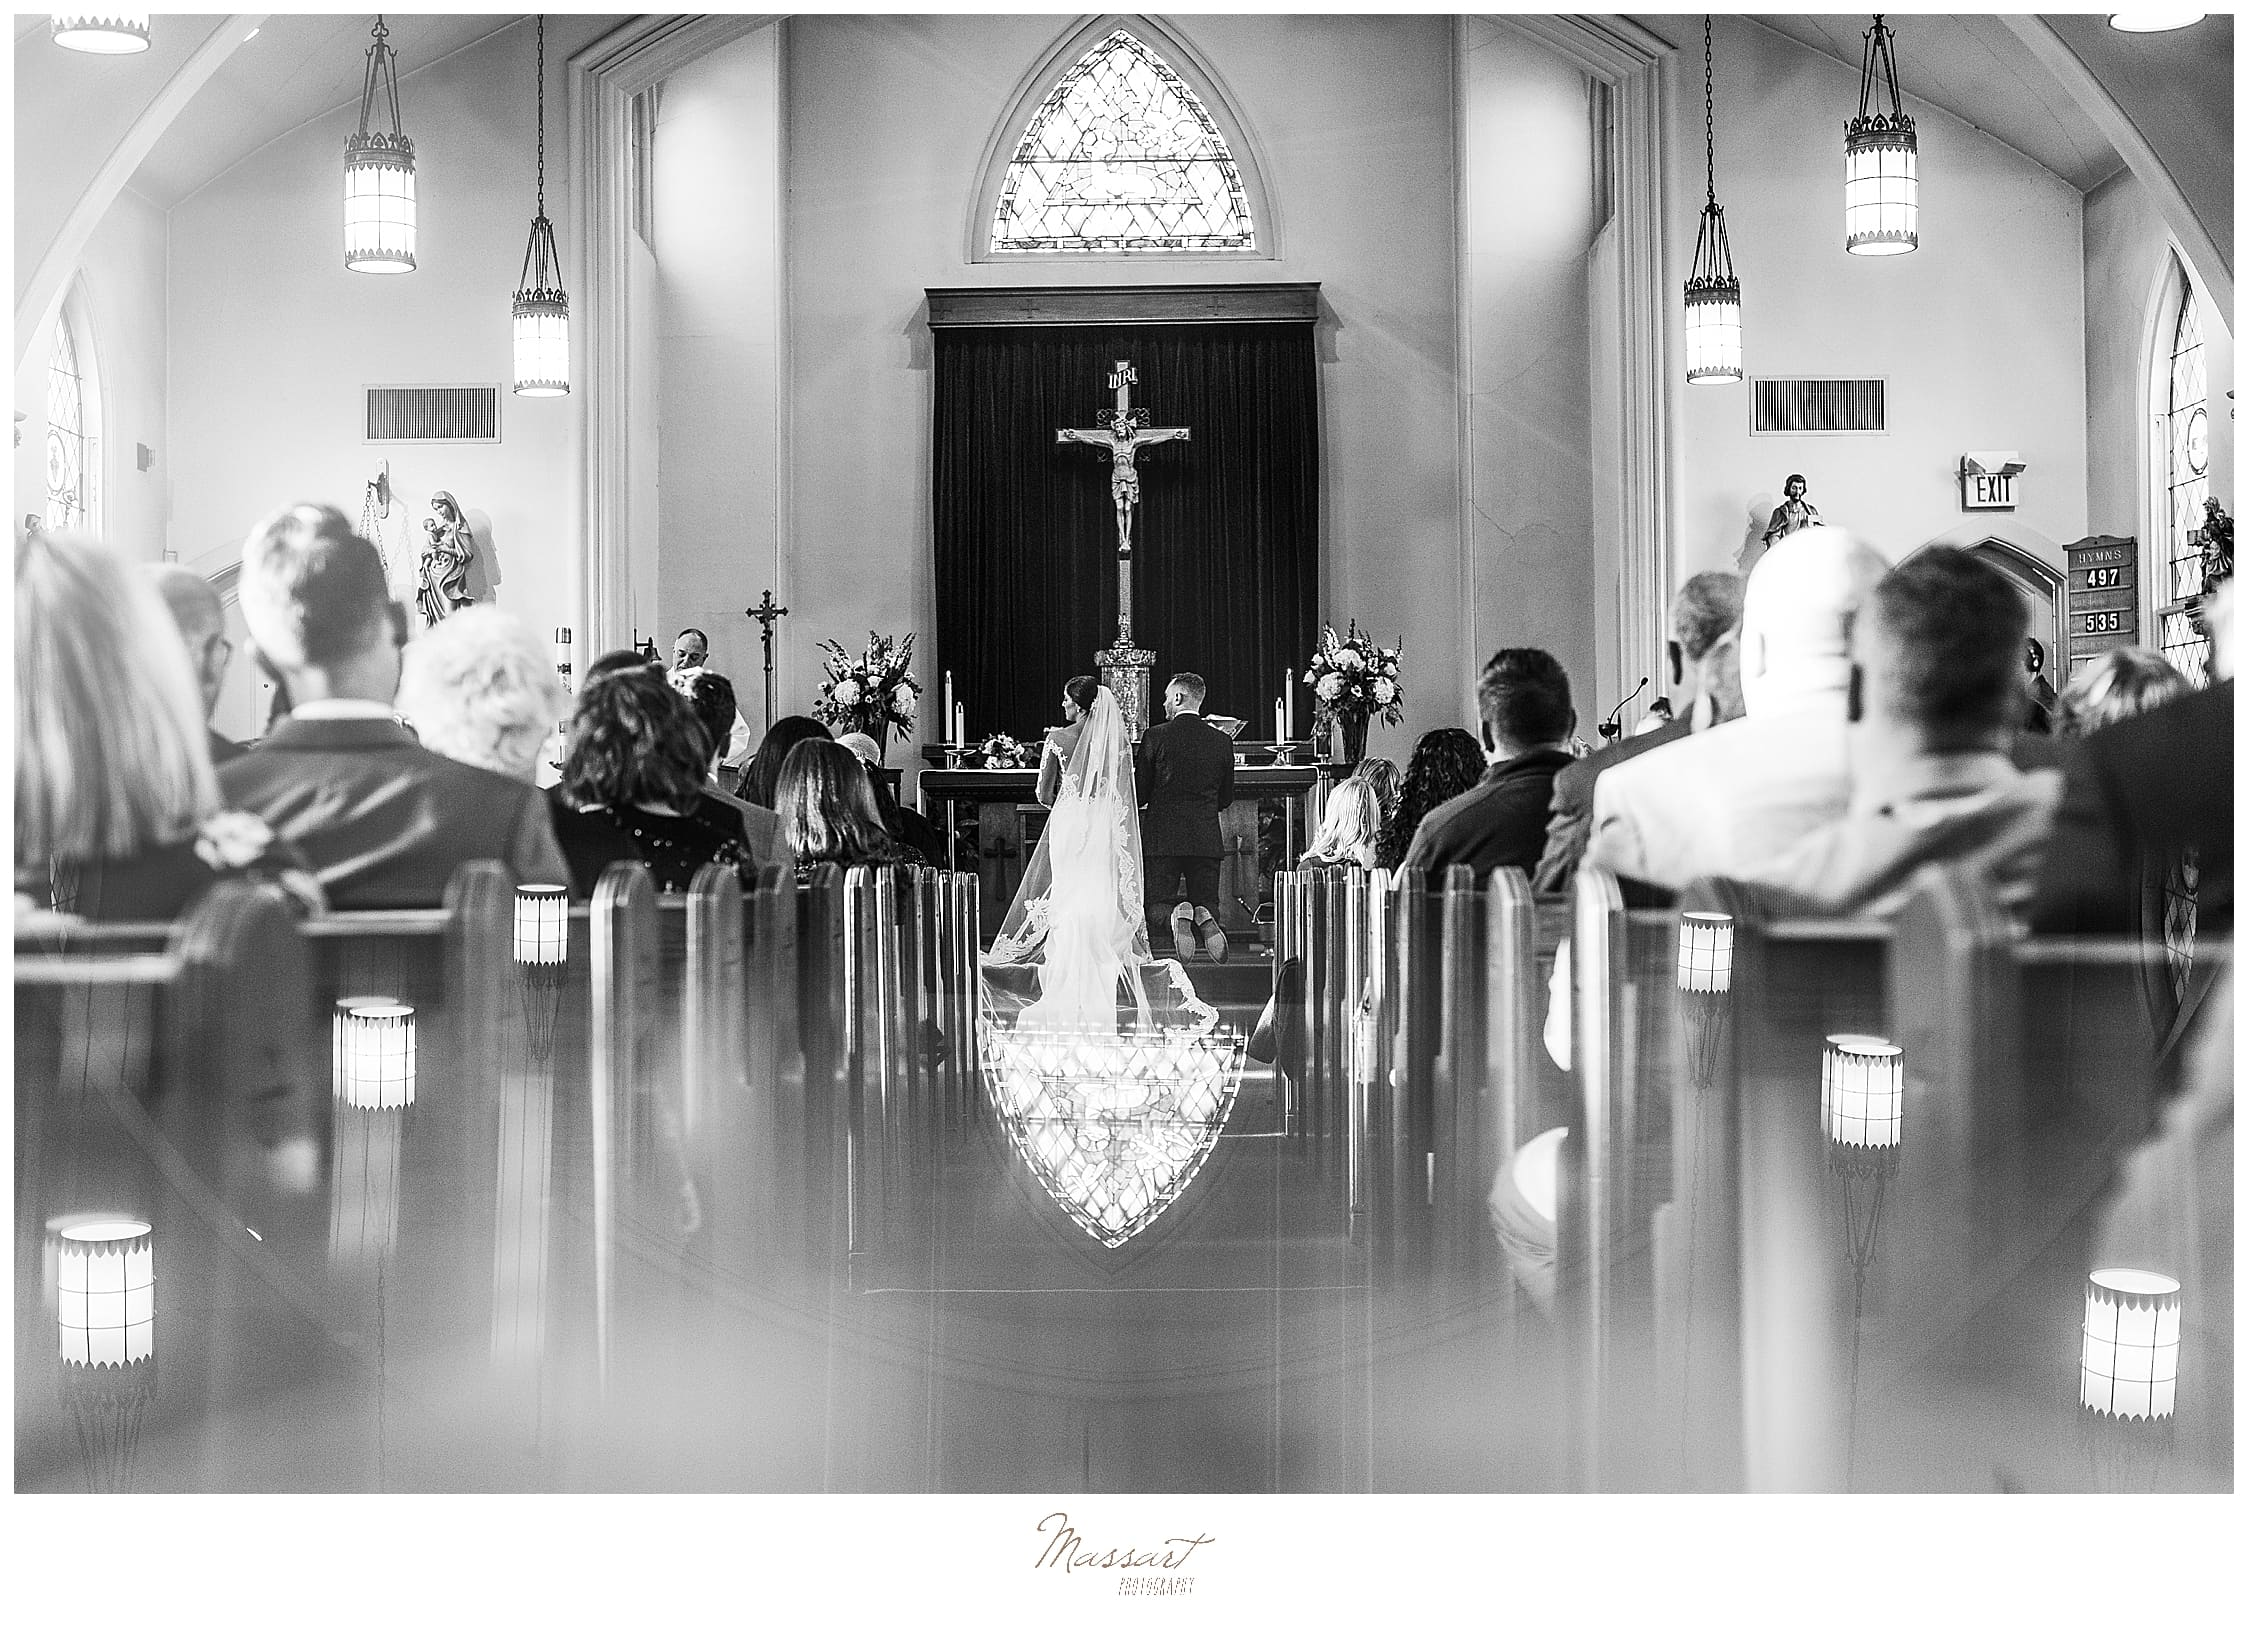 wedding ceremony in traditional church photographed by RI, CT, MA wedding photographers Massart Photography